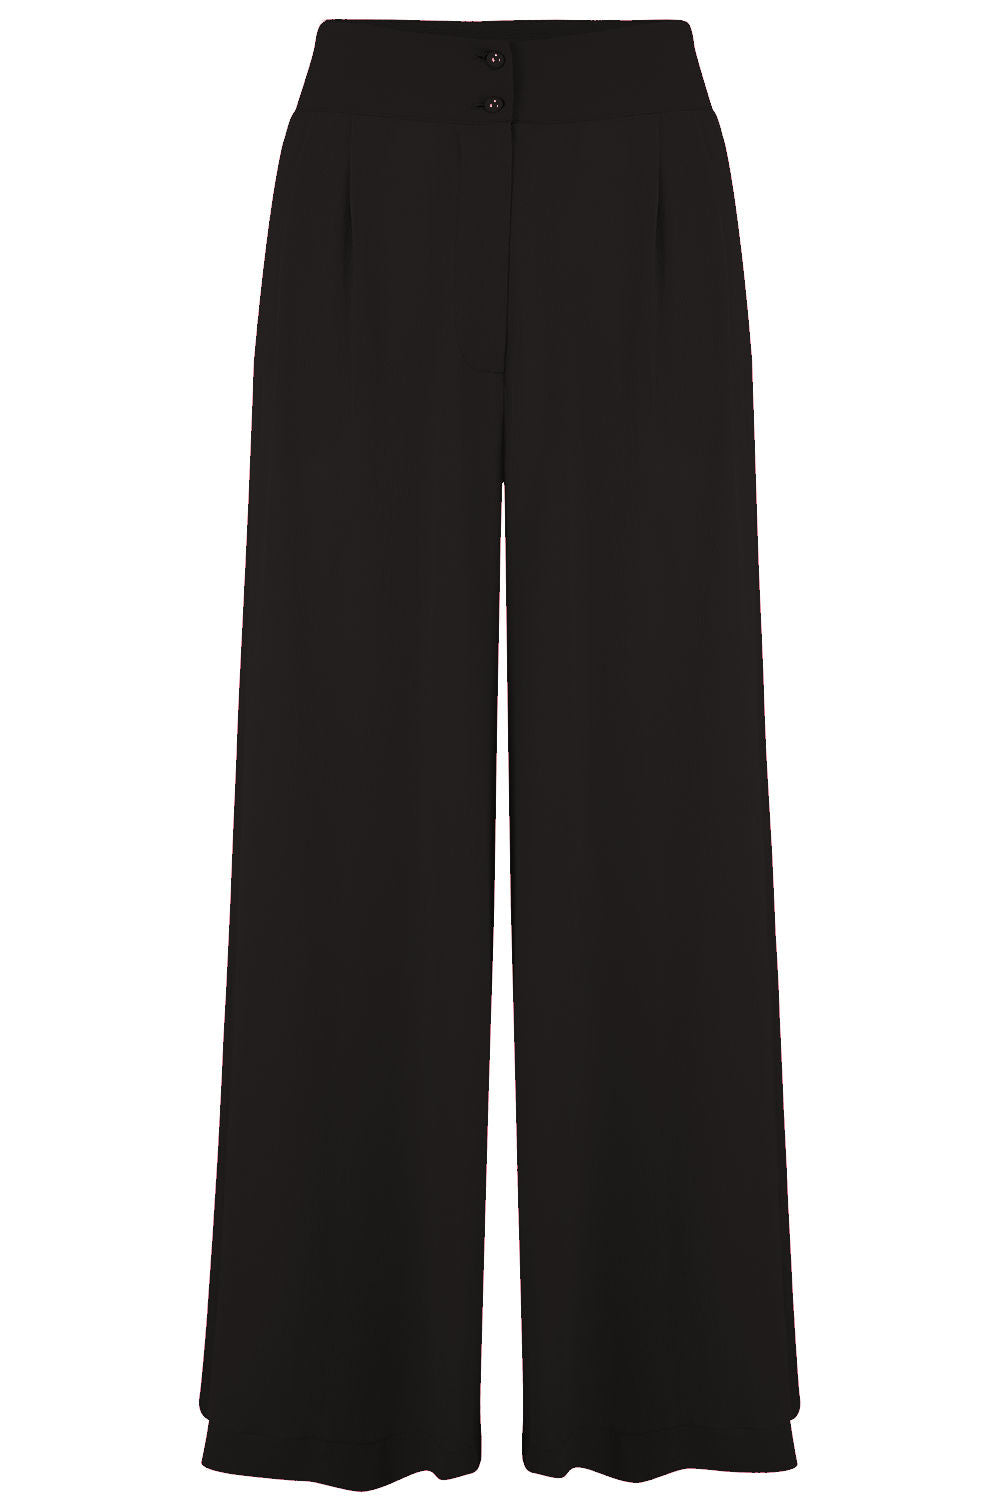 "Rock n Romance The ""Sophia"" Plazzo Wide Leg Trousers in Black, Easy To Wear Vintage Inspired Style - RocknRomance Clothing"